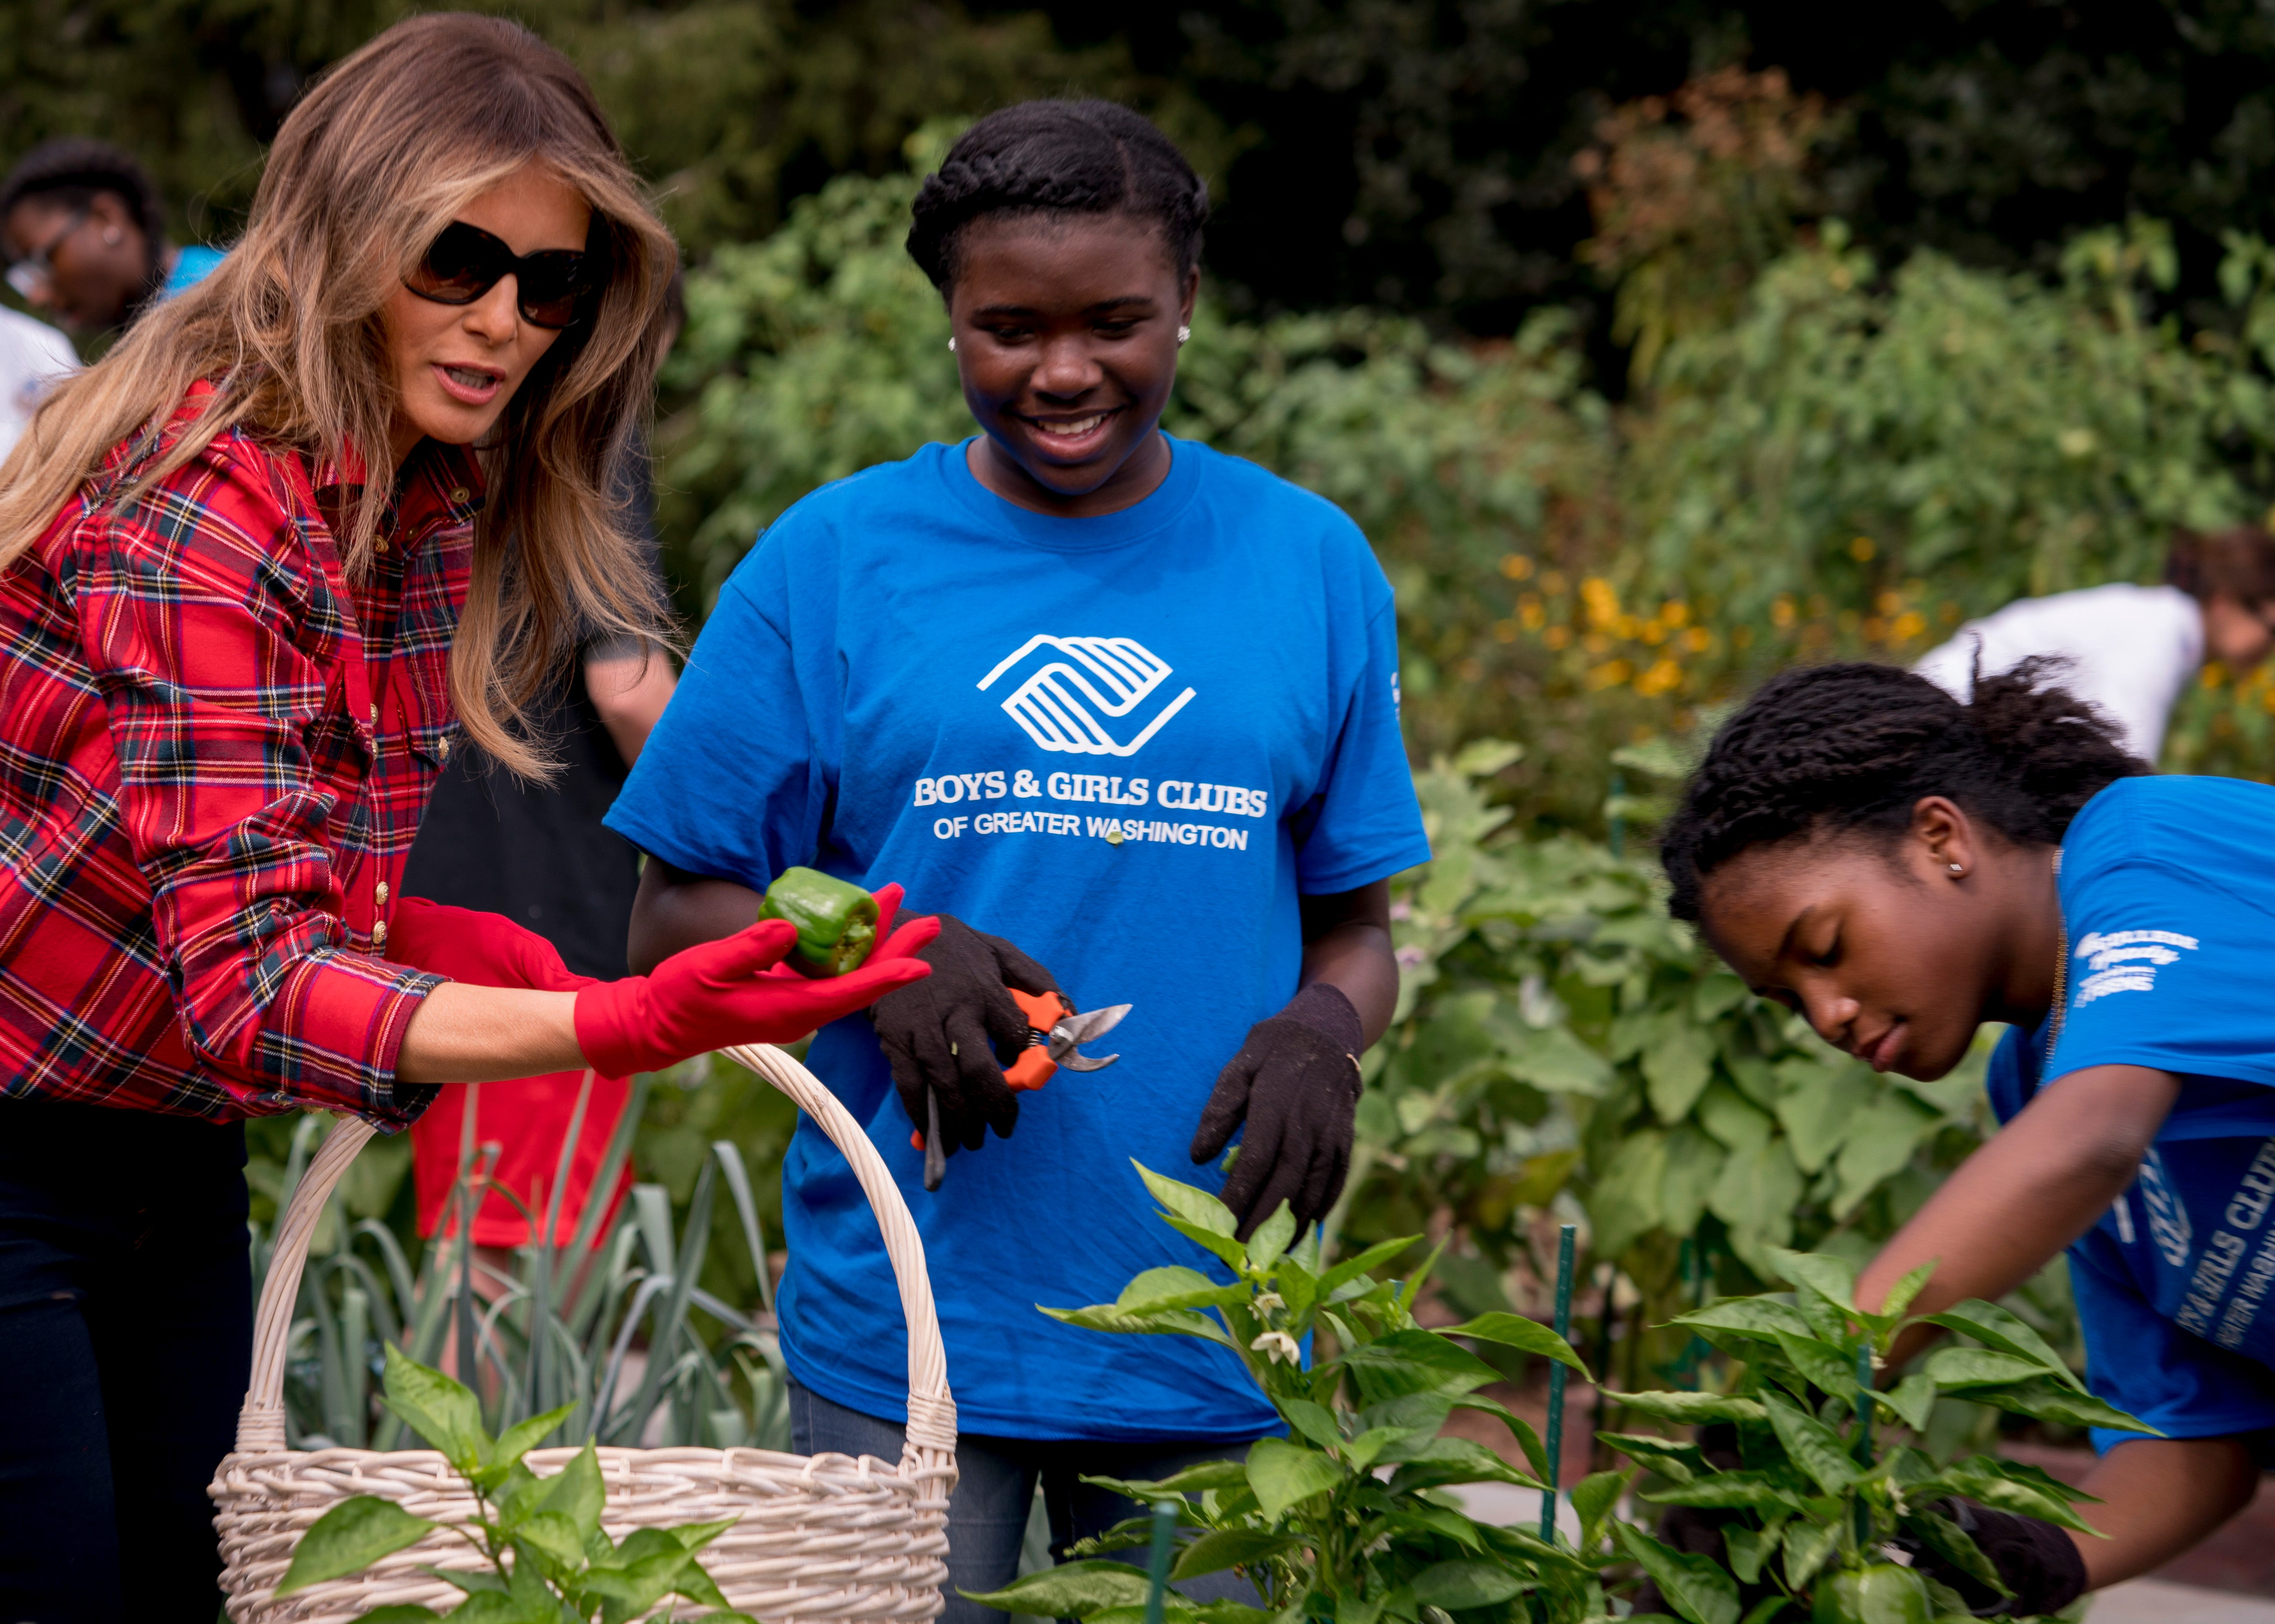 White House garden chic: Melania sports flannel, jeans, sneakers tending to crops